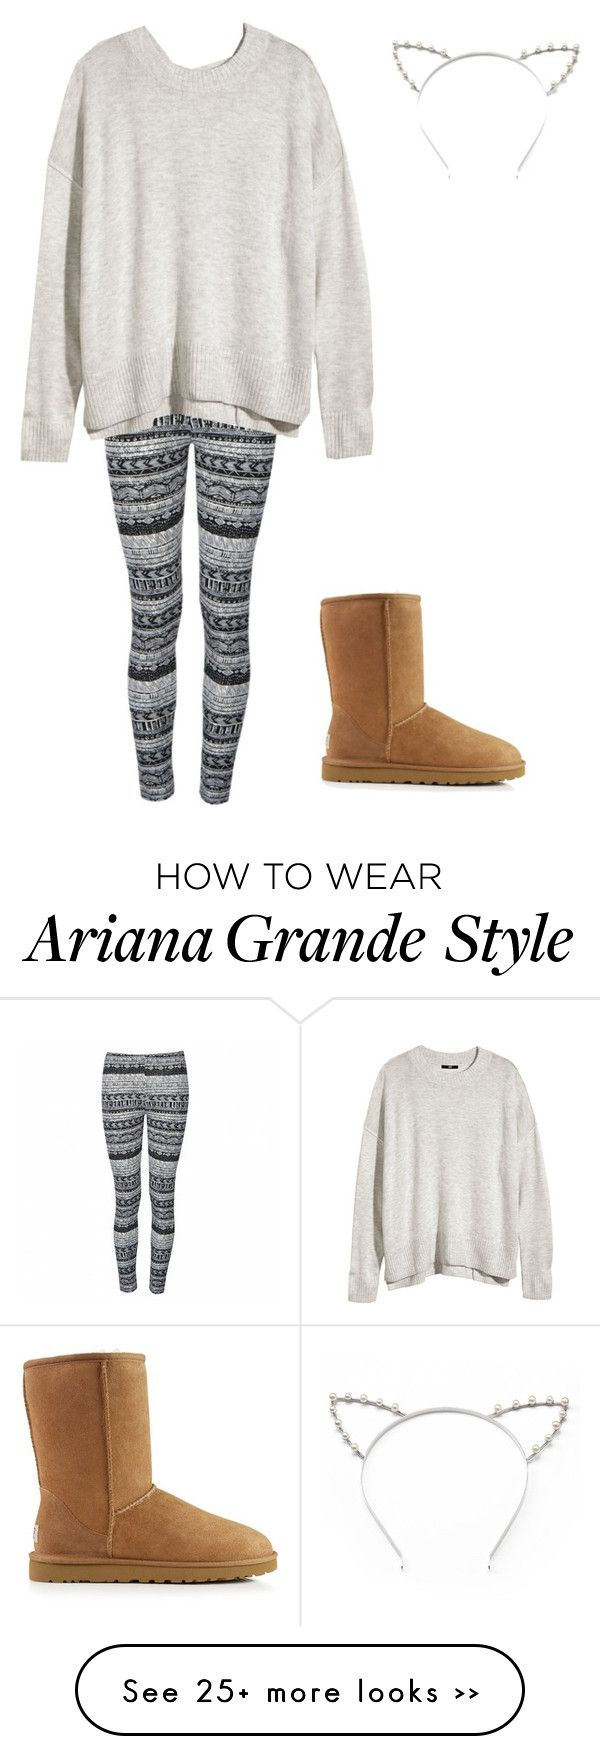 """""""Ariana Grande inspired casual winter outfit"""" by superfluffy23 on Polyvore"""